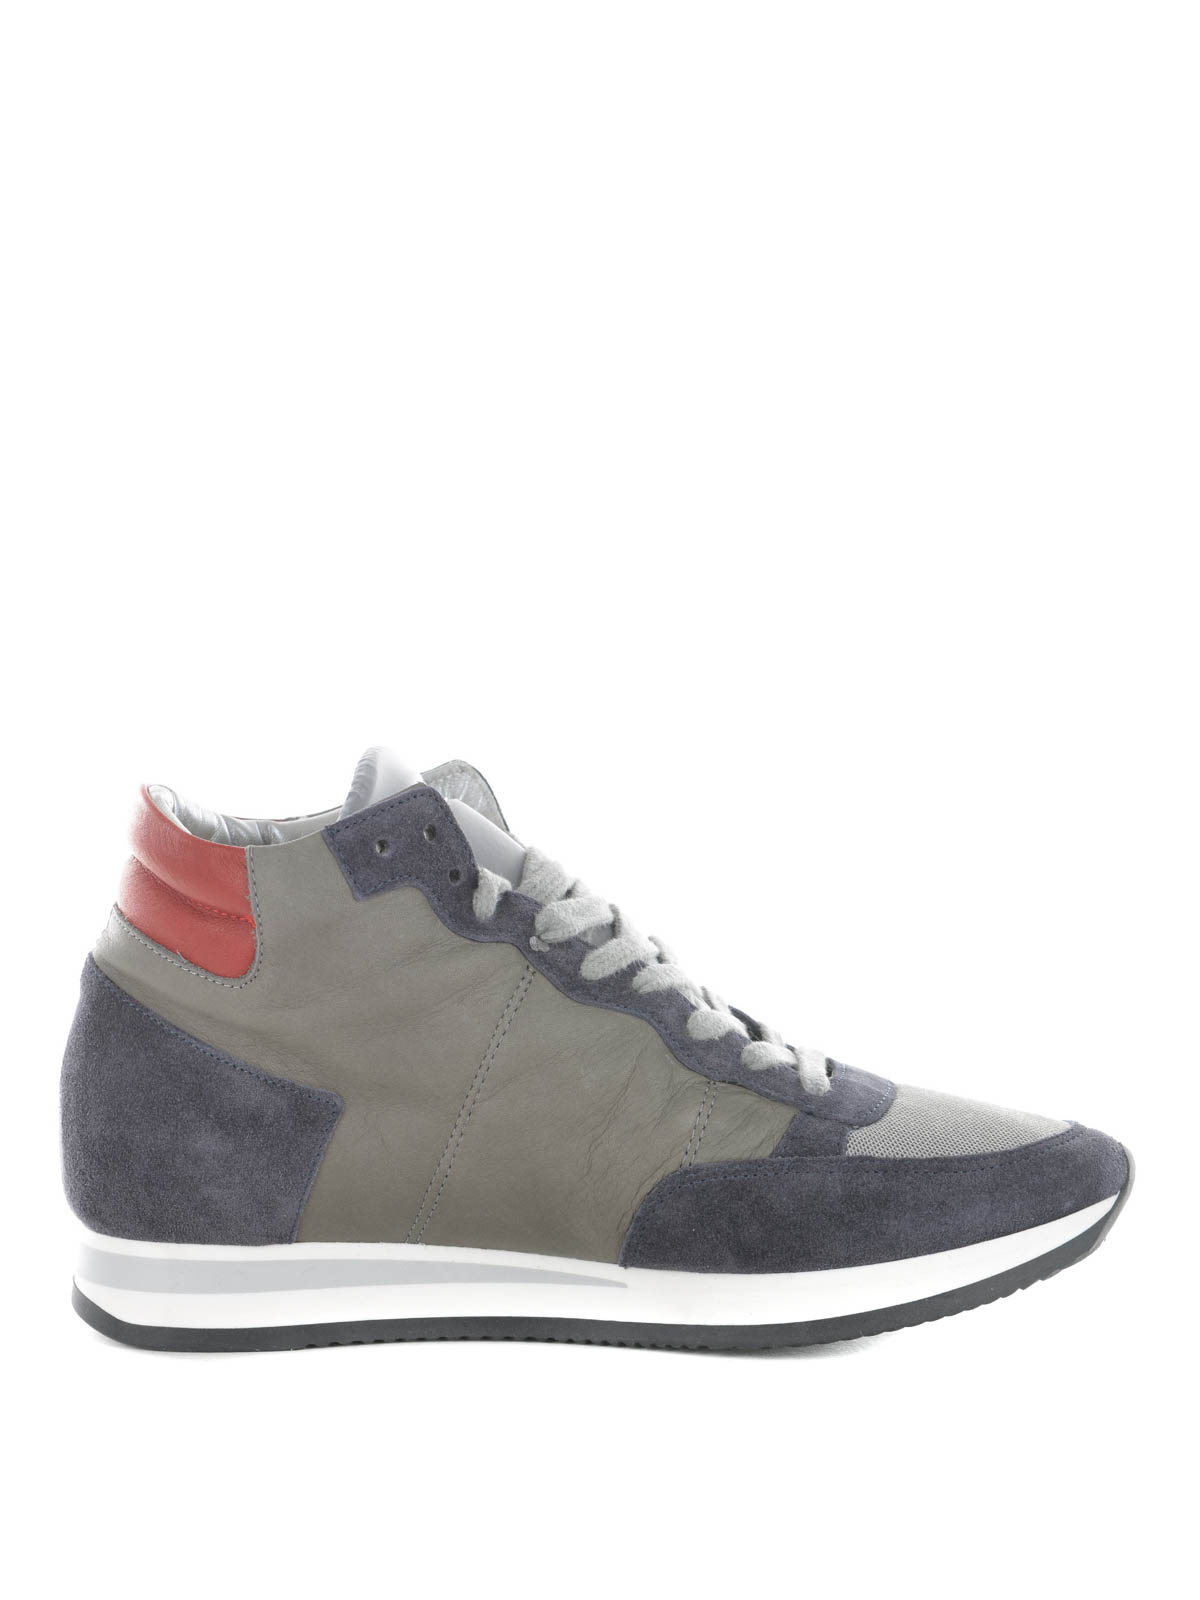 tropez high world hi top sneakers by philippe model trainers ikrix. Black Bedroom Furniture Sets. Home Design Ideas